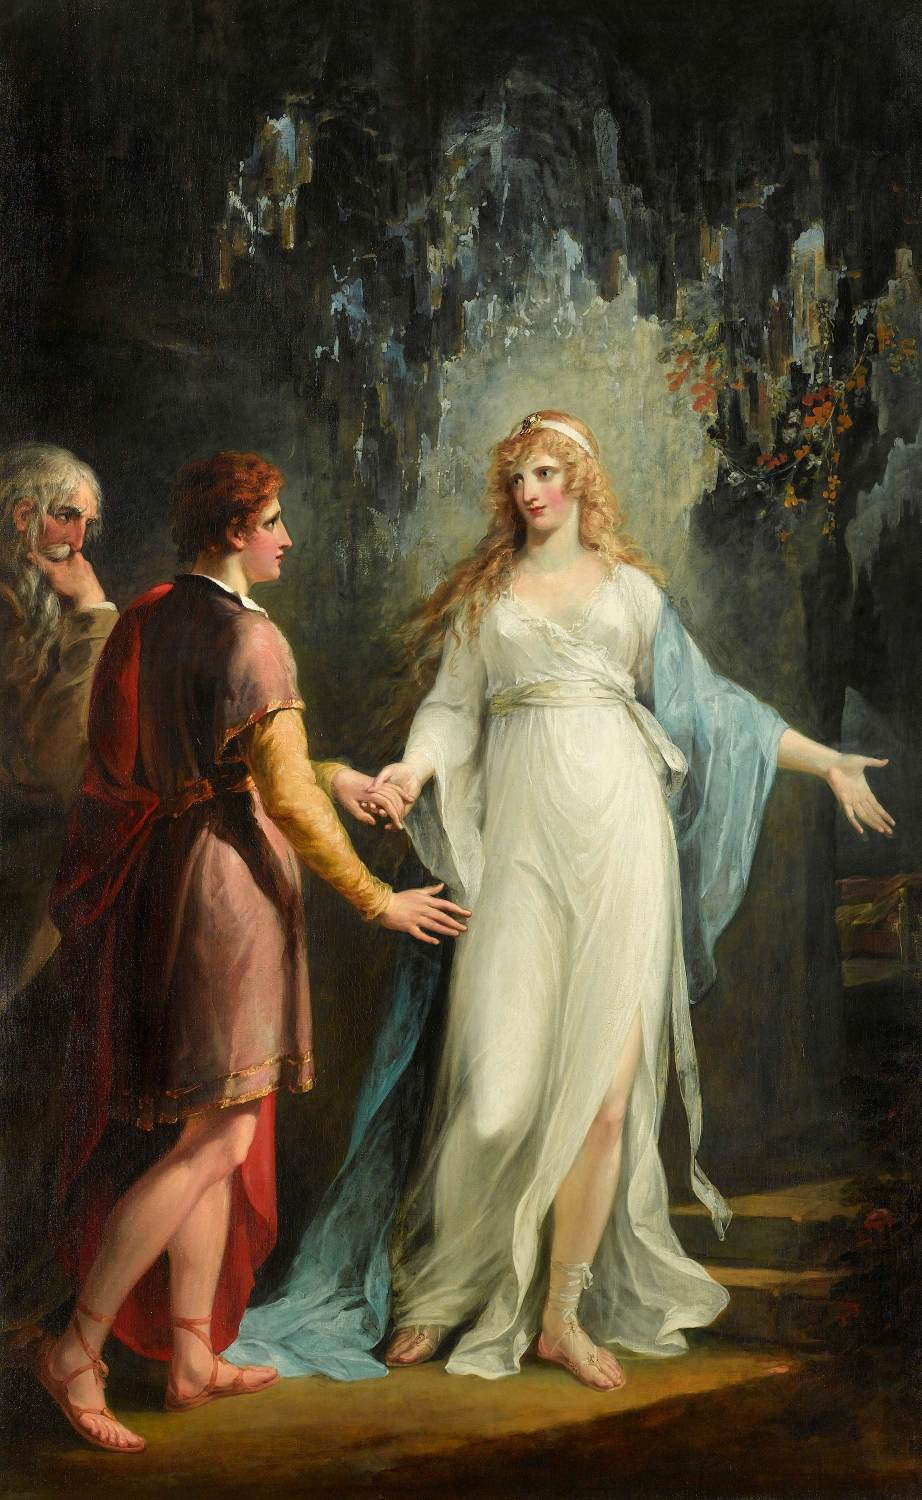 Calypso receiving Telemachus and Mentor in the Grotto by